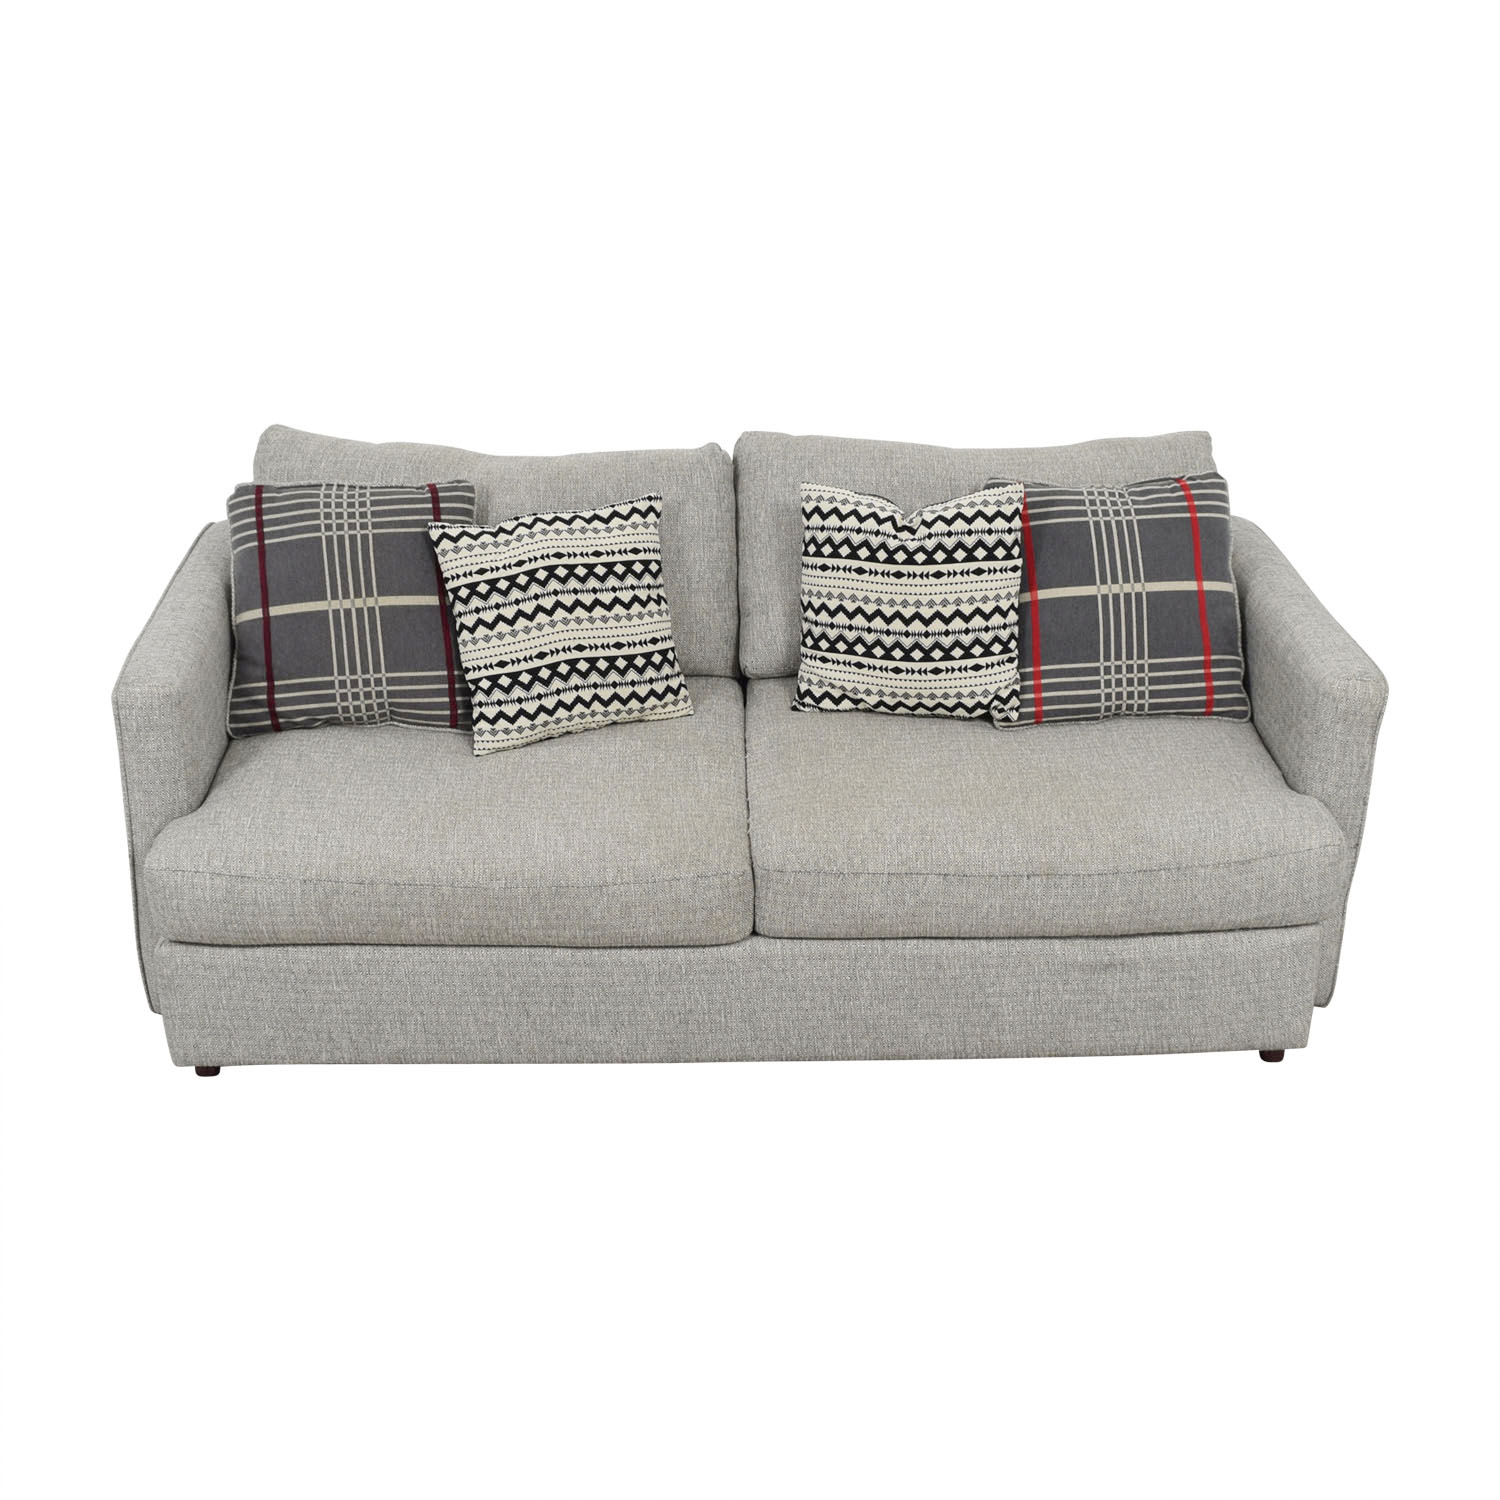 buy American Furniture Grey Two-Cushion Tweed Sofa American Furniture Classic Sofas